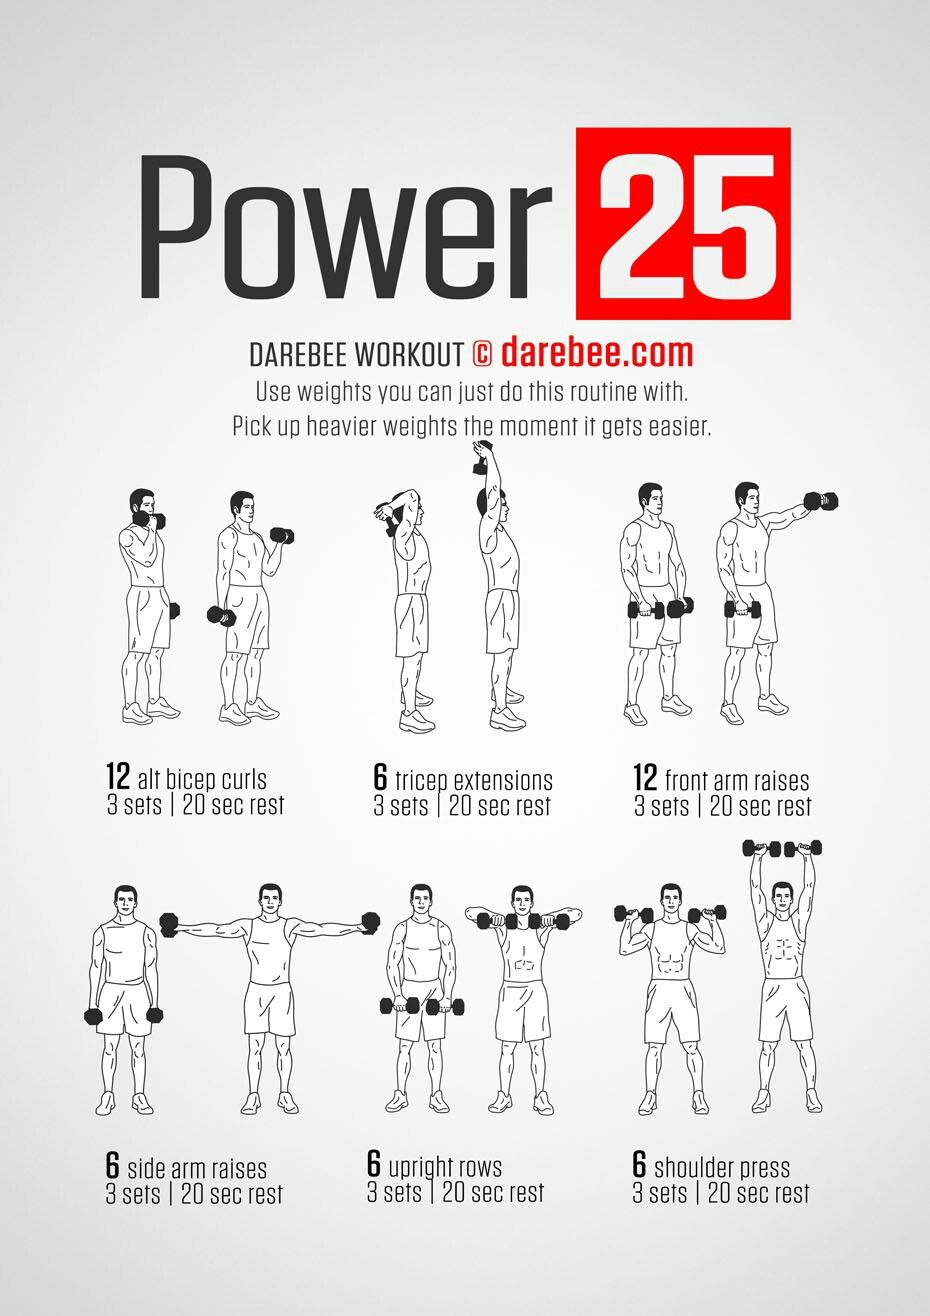 Power 25 Workout | Posted by: NewHowtoLoseBellyFat.com